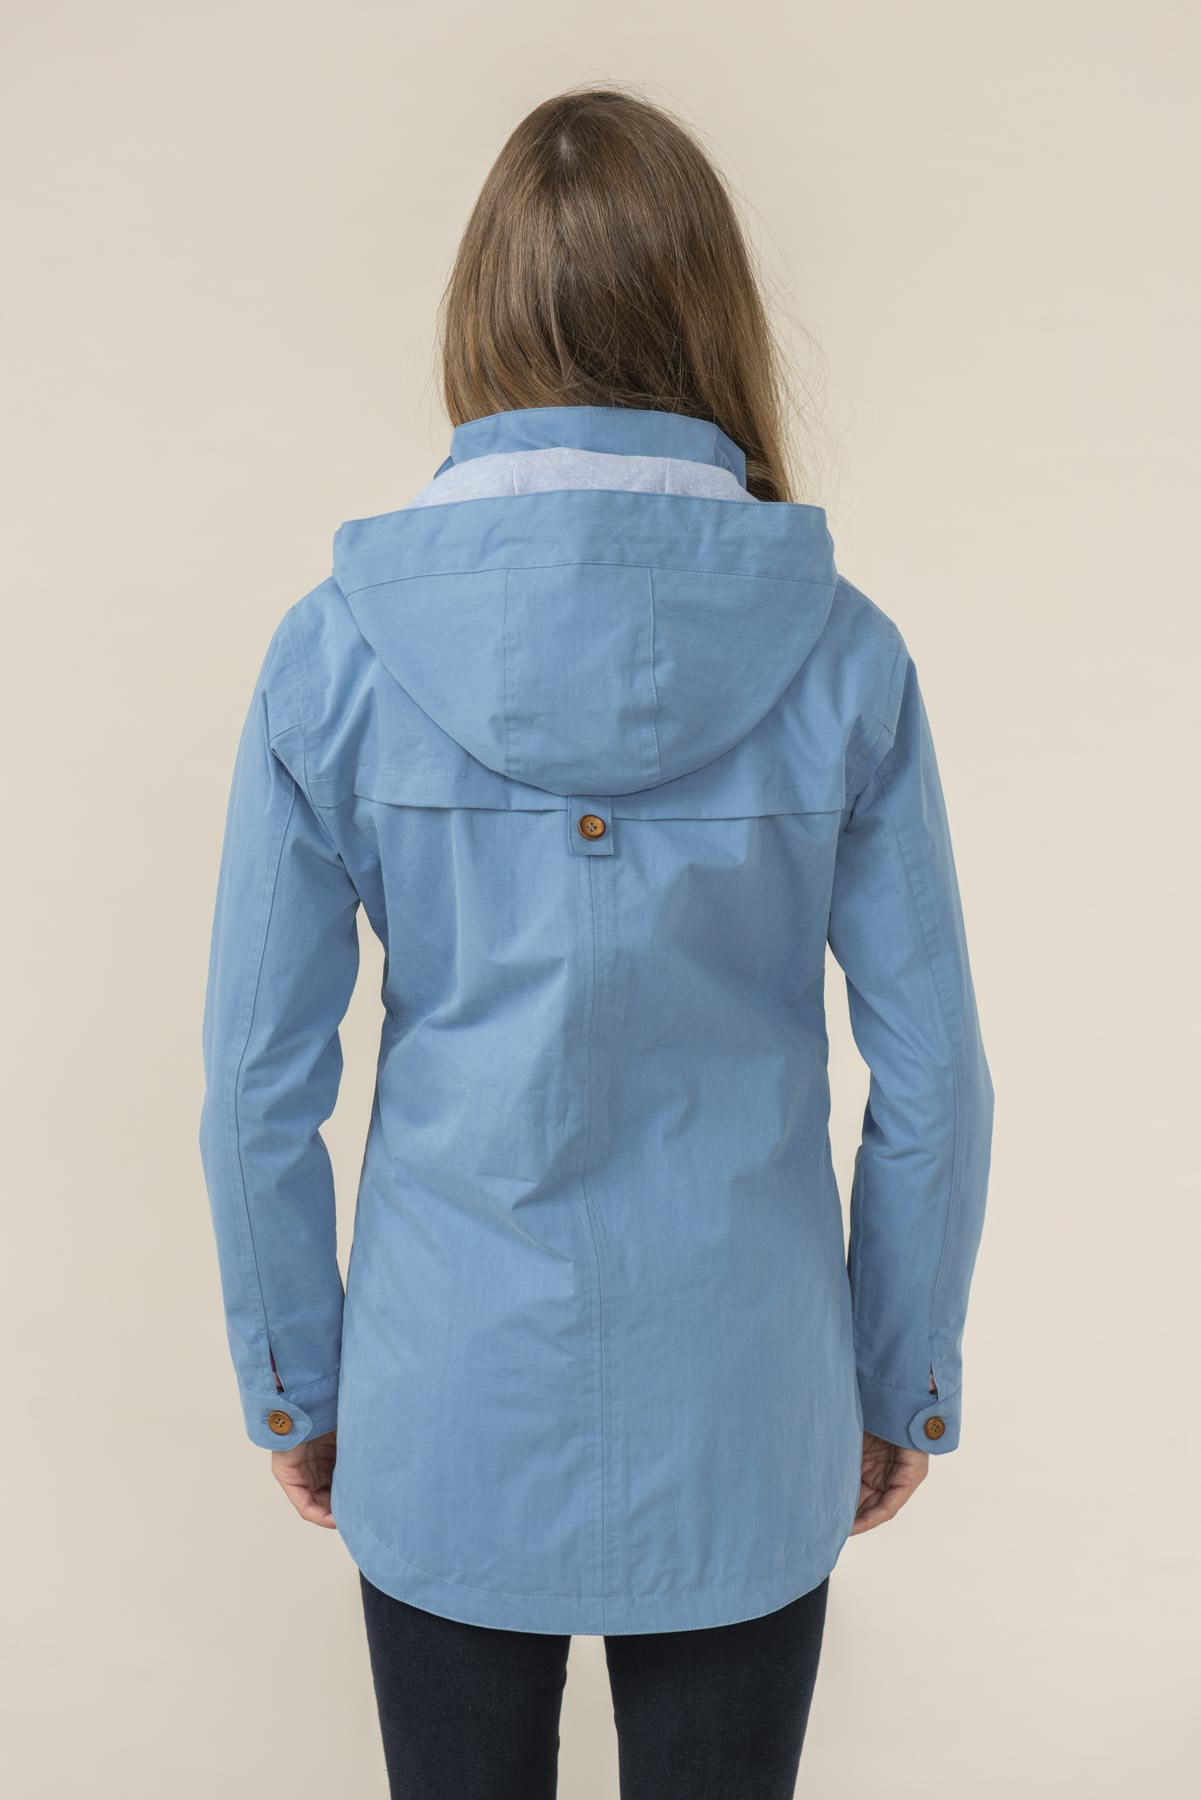 Women's Coats - Tori - Blue Raincoat